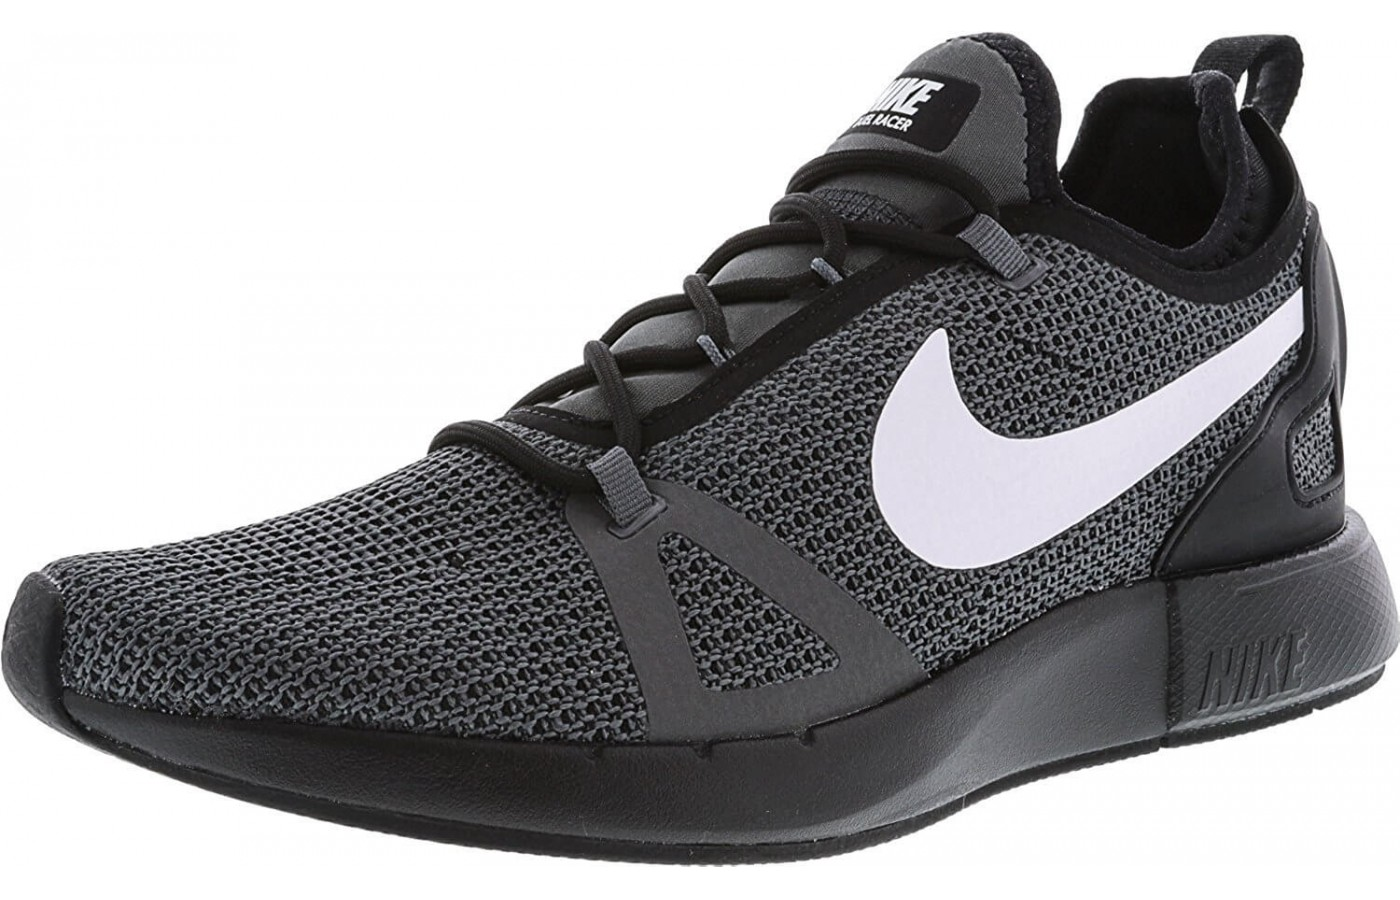 The Nike Duel Racer features a Phylon midsole